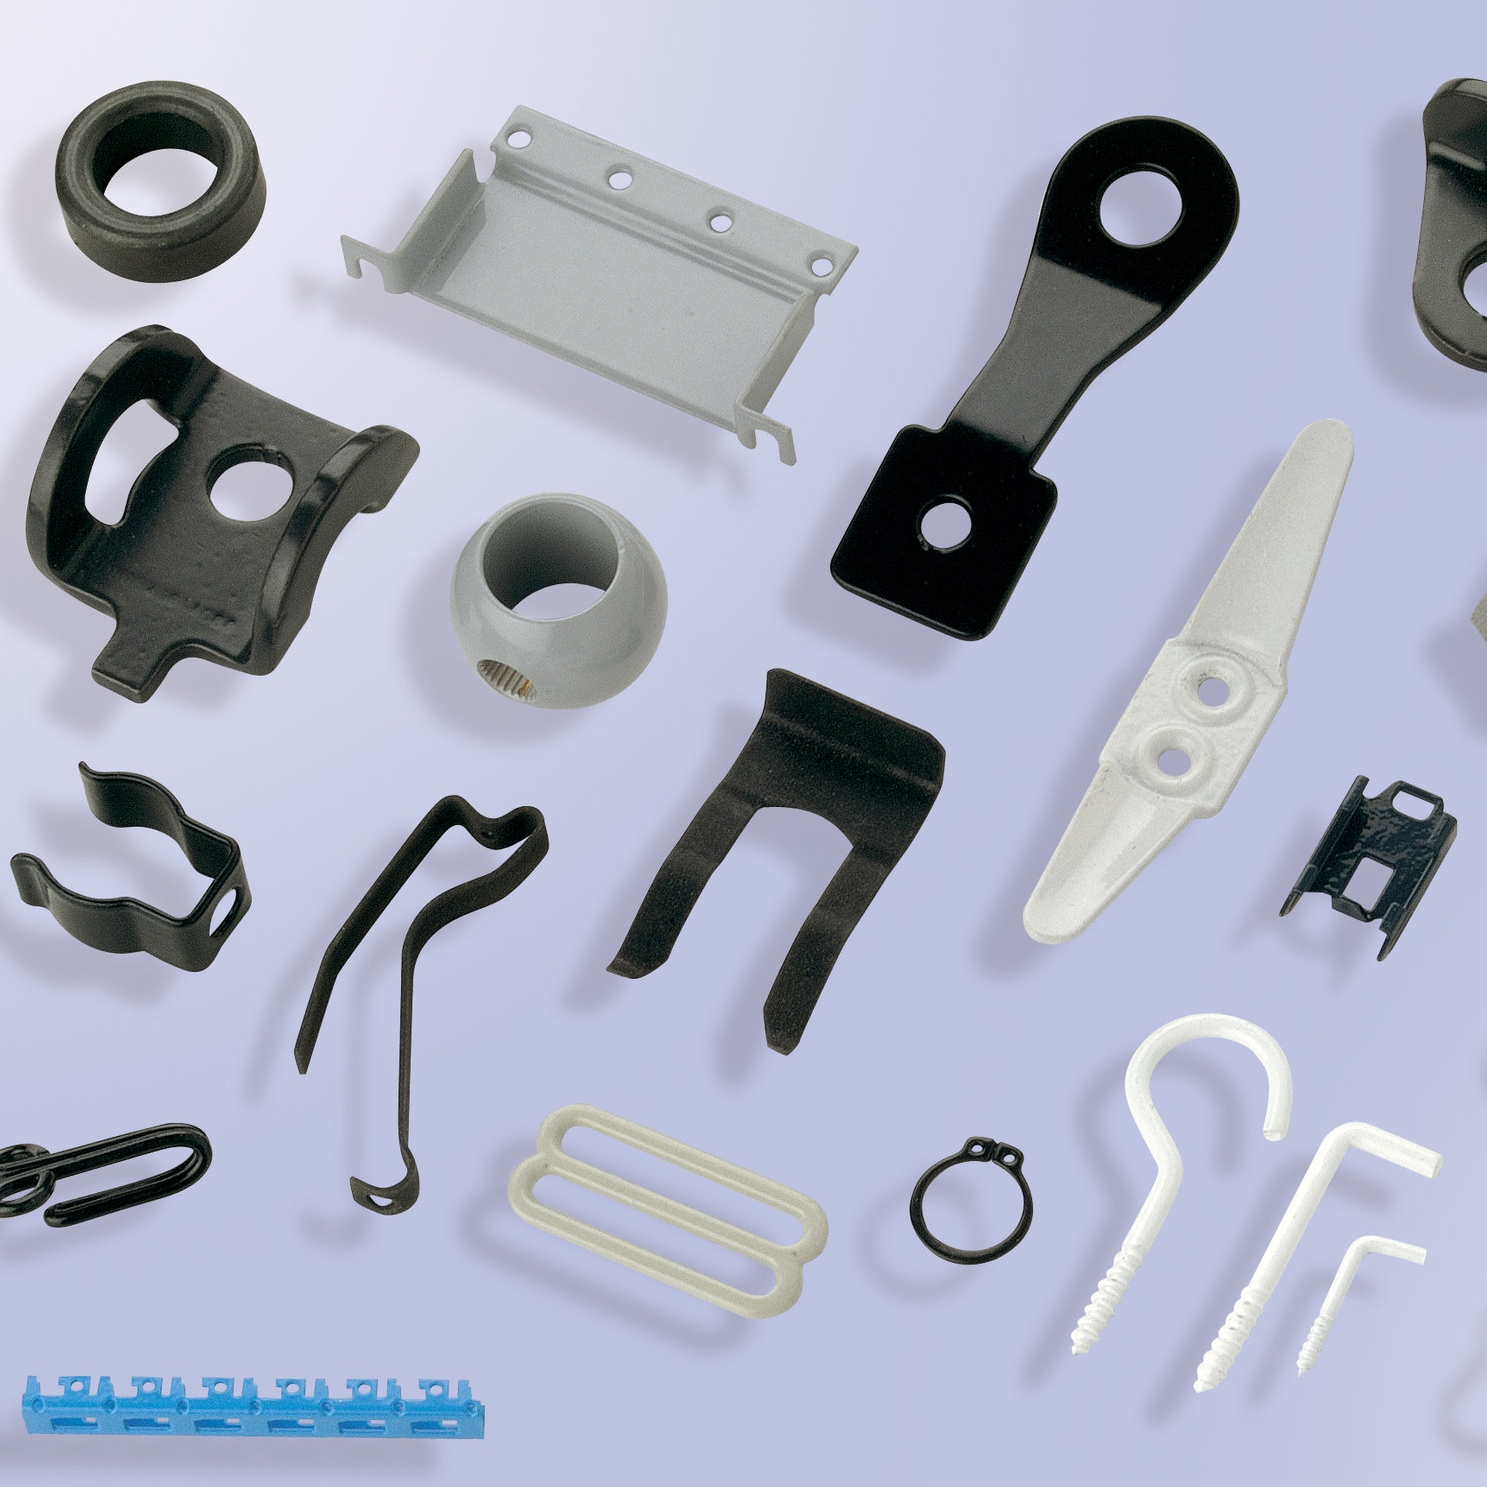 Arkema Products for Small Parts